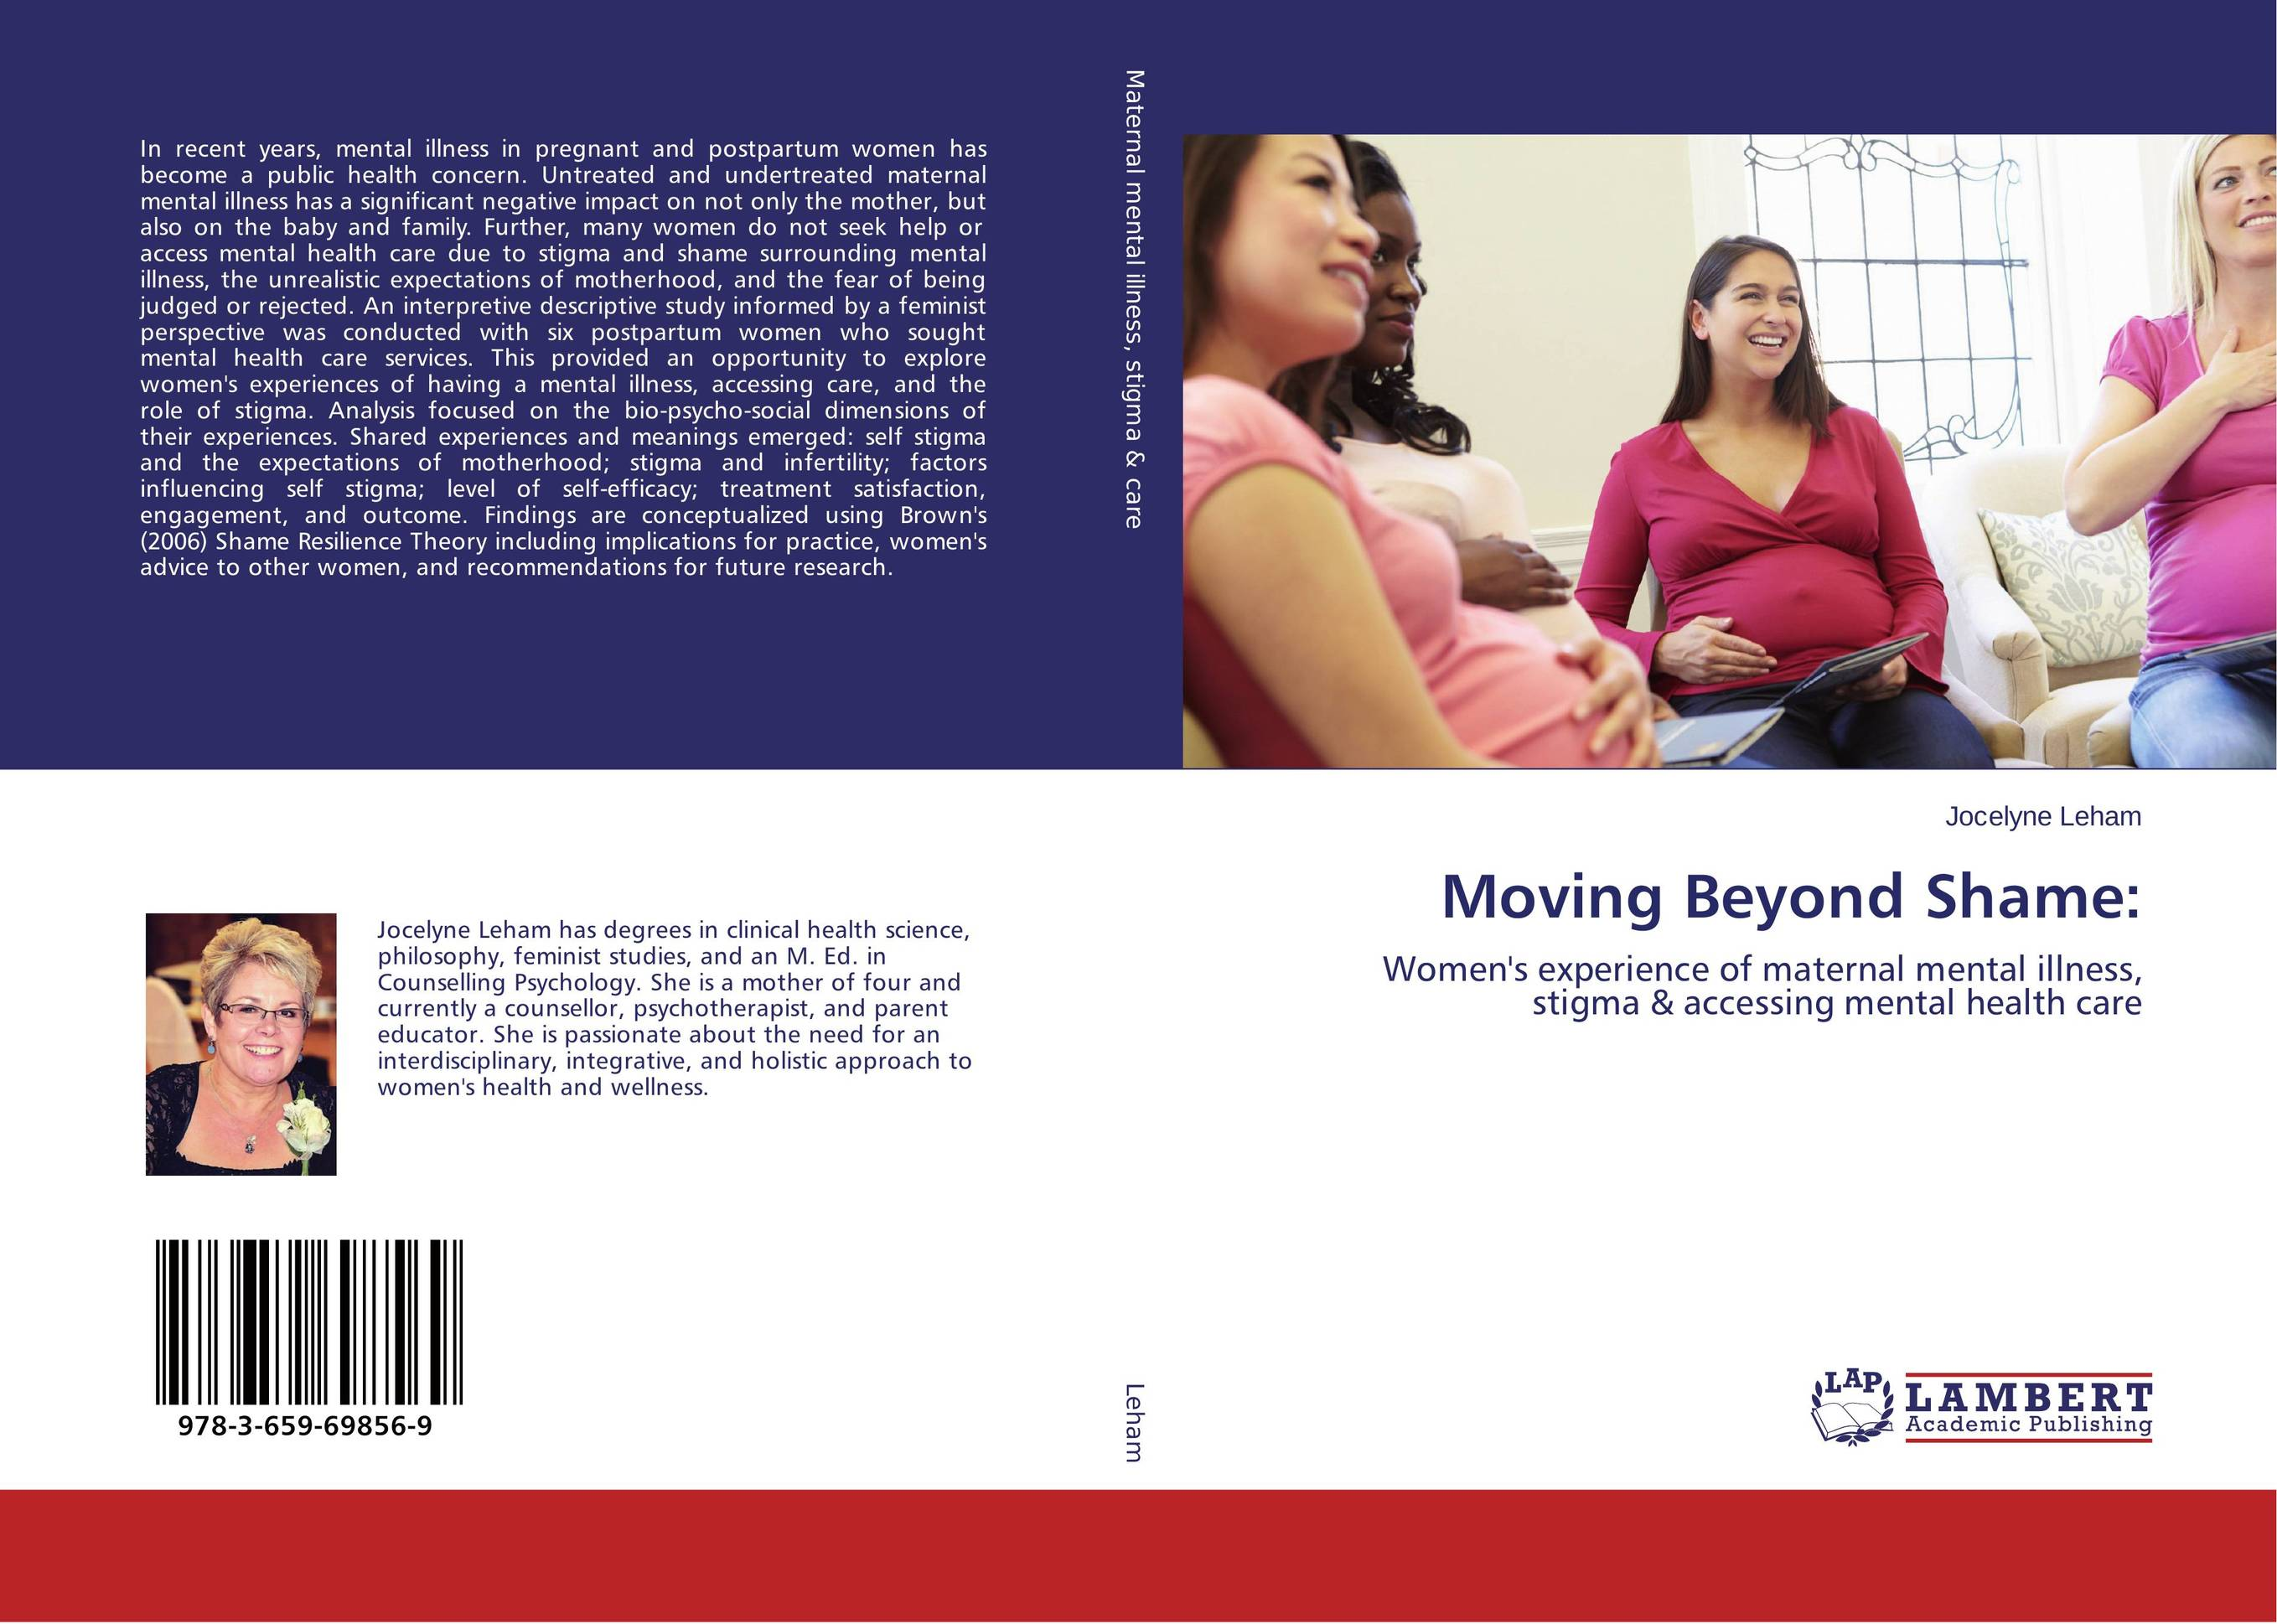 Moving Beyond Shame: psychiatric disorders in postpartum period